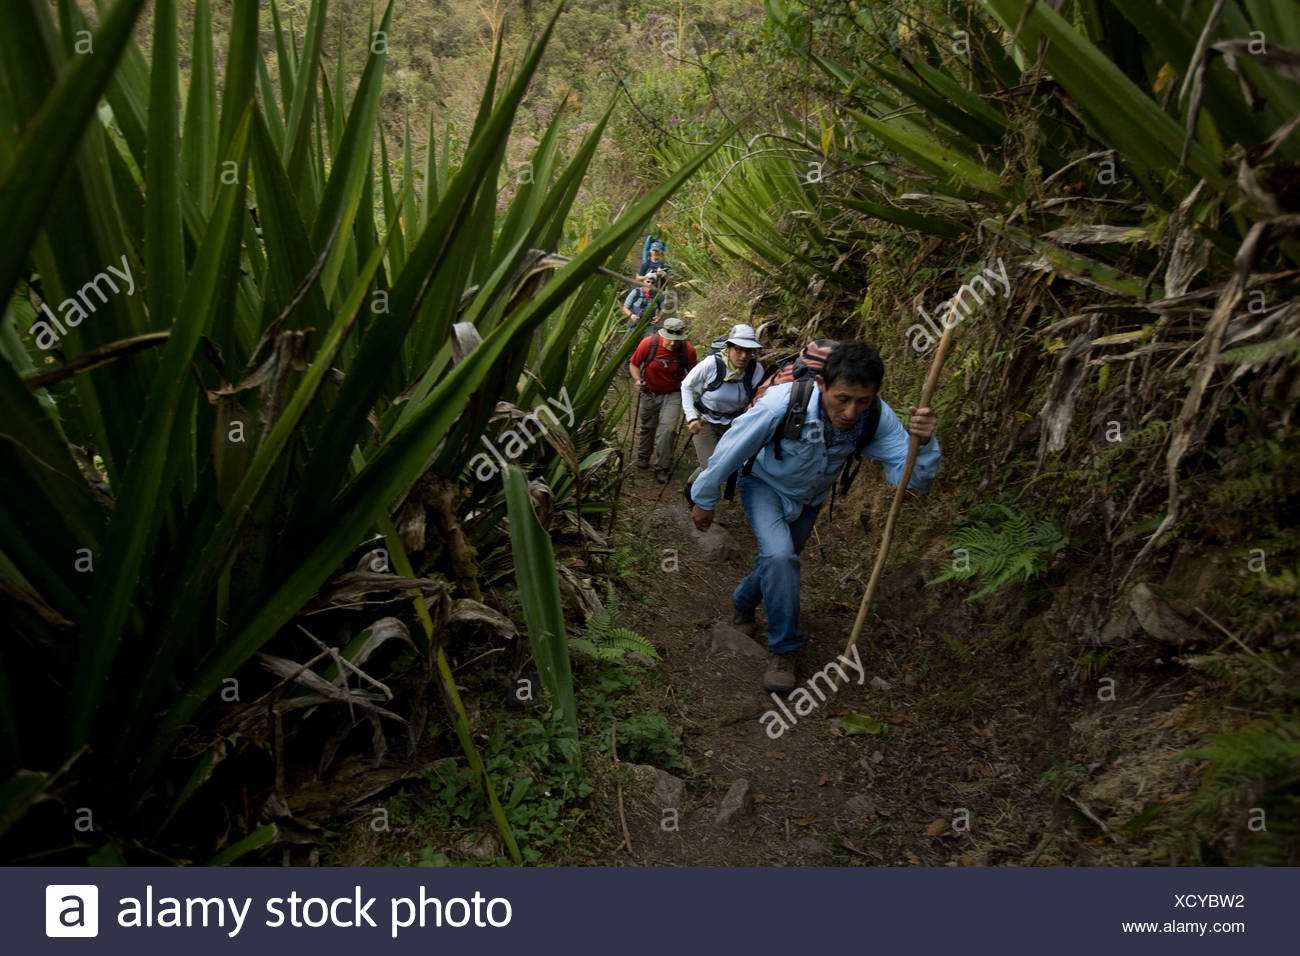 Hiking through lofty tunnels of Spanish moss, orchids, and bromeliads. - Stock Image